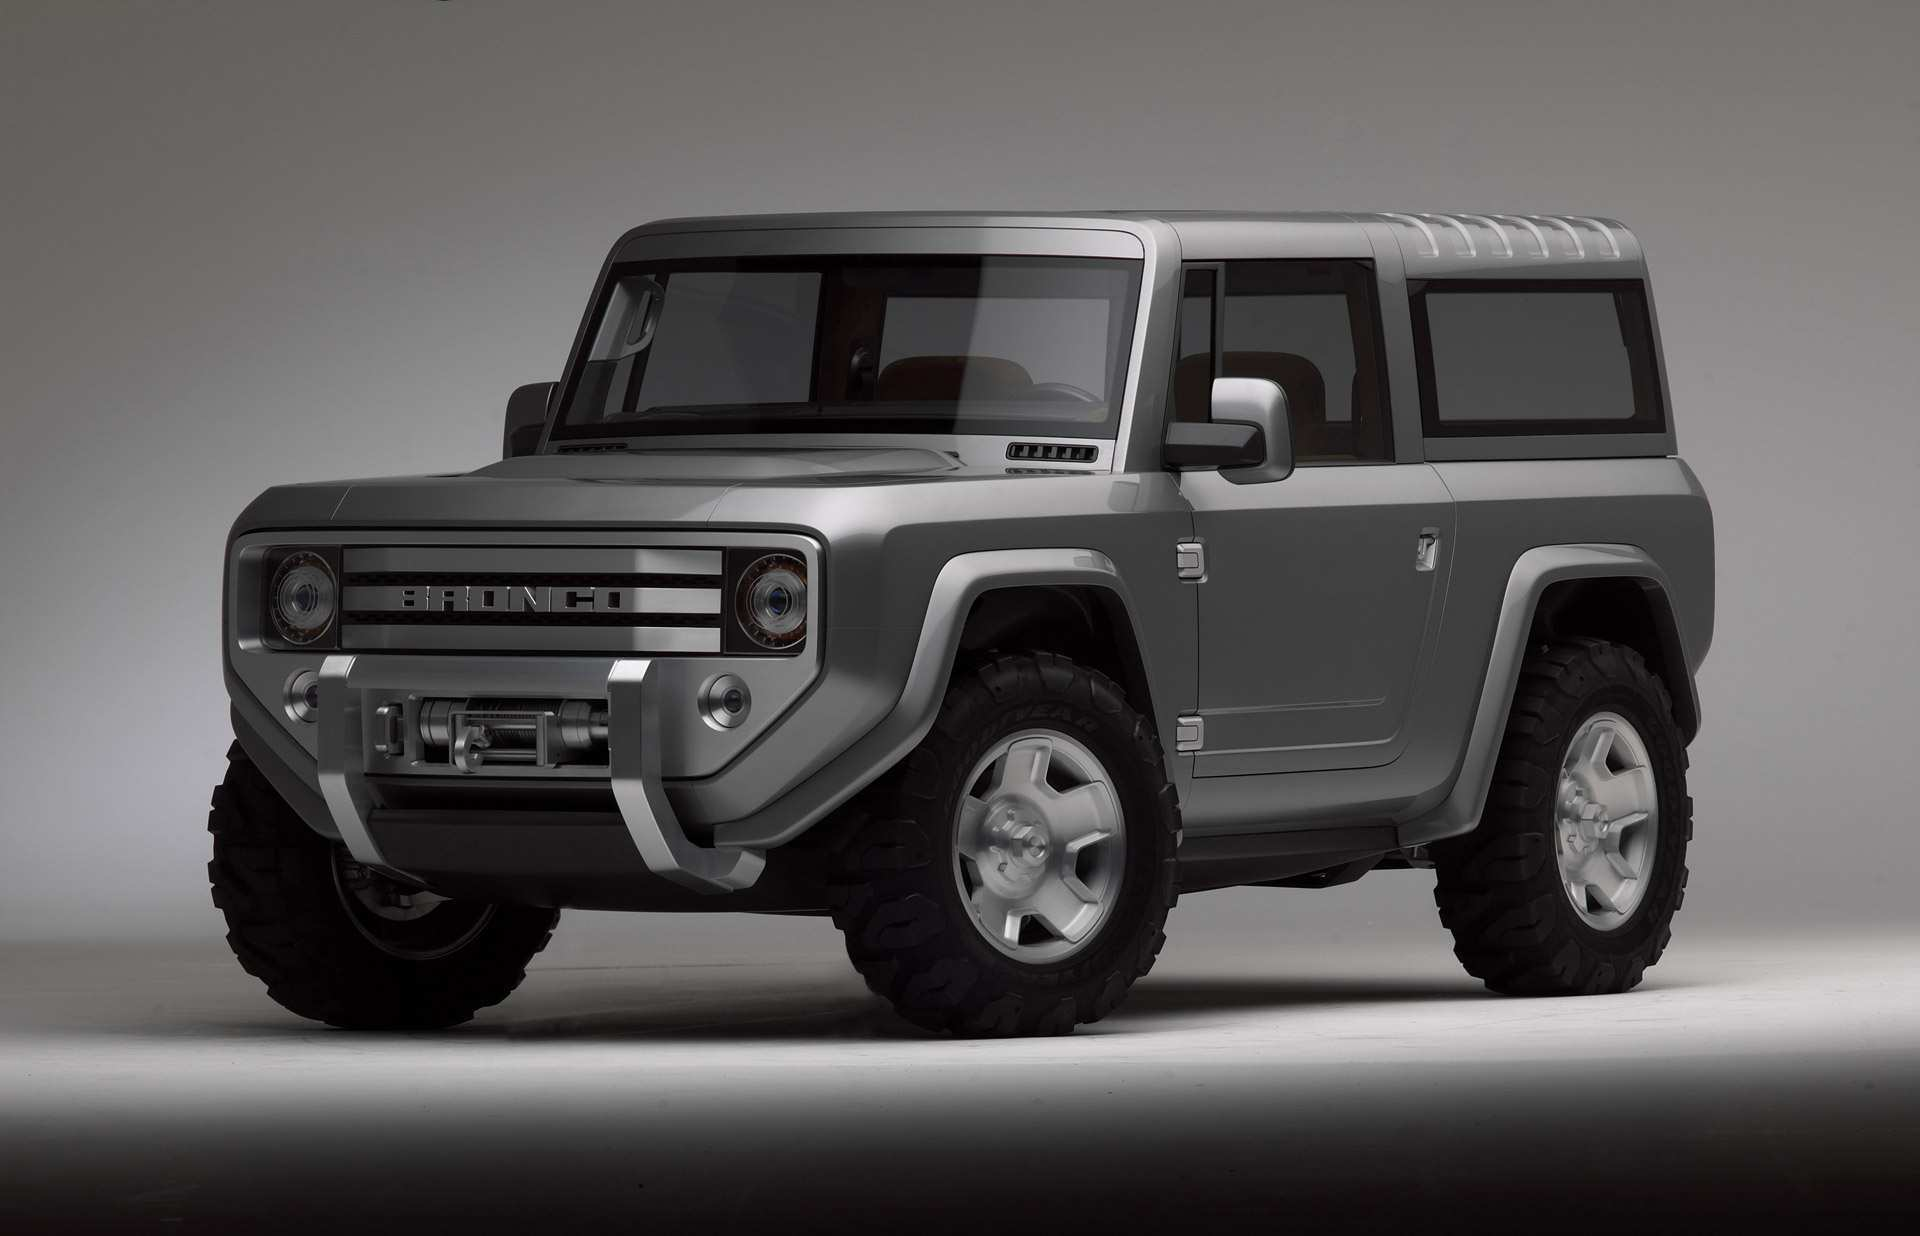 38 Best 2020 Ford Bronco And Ranger Overview